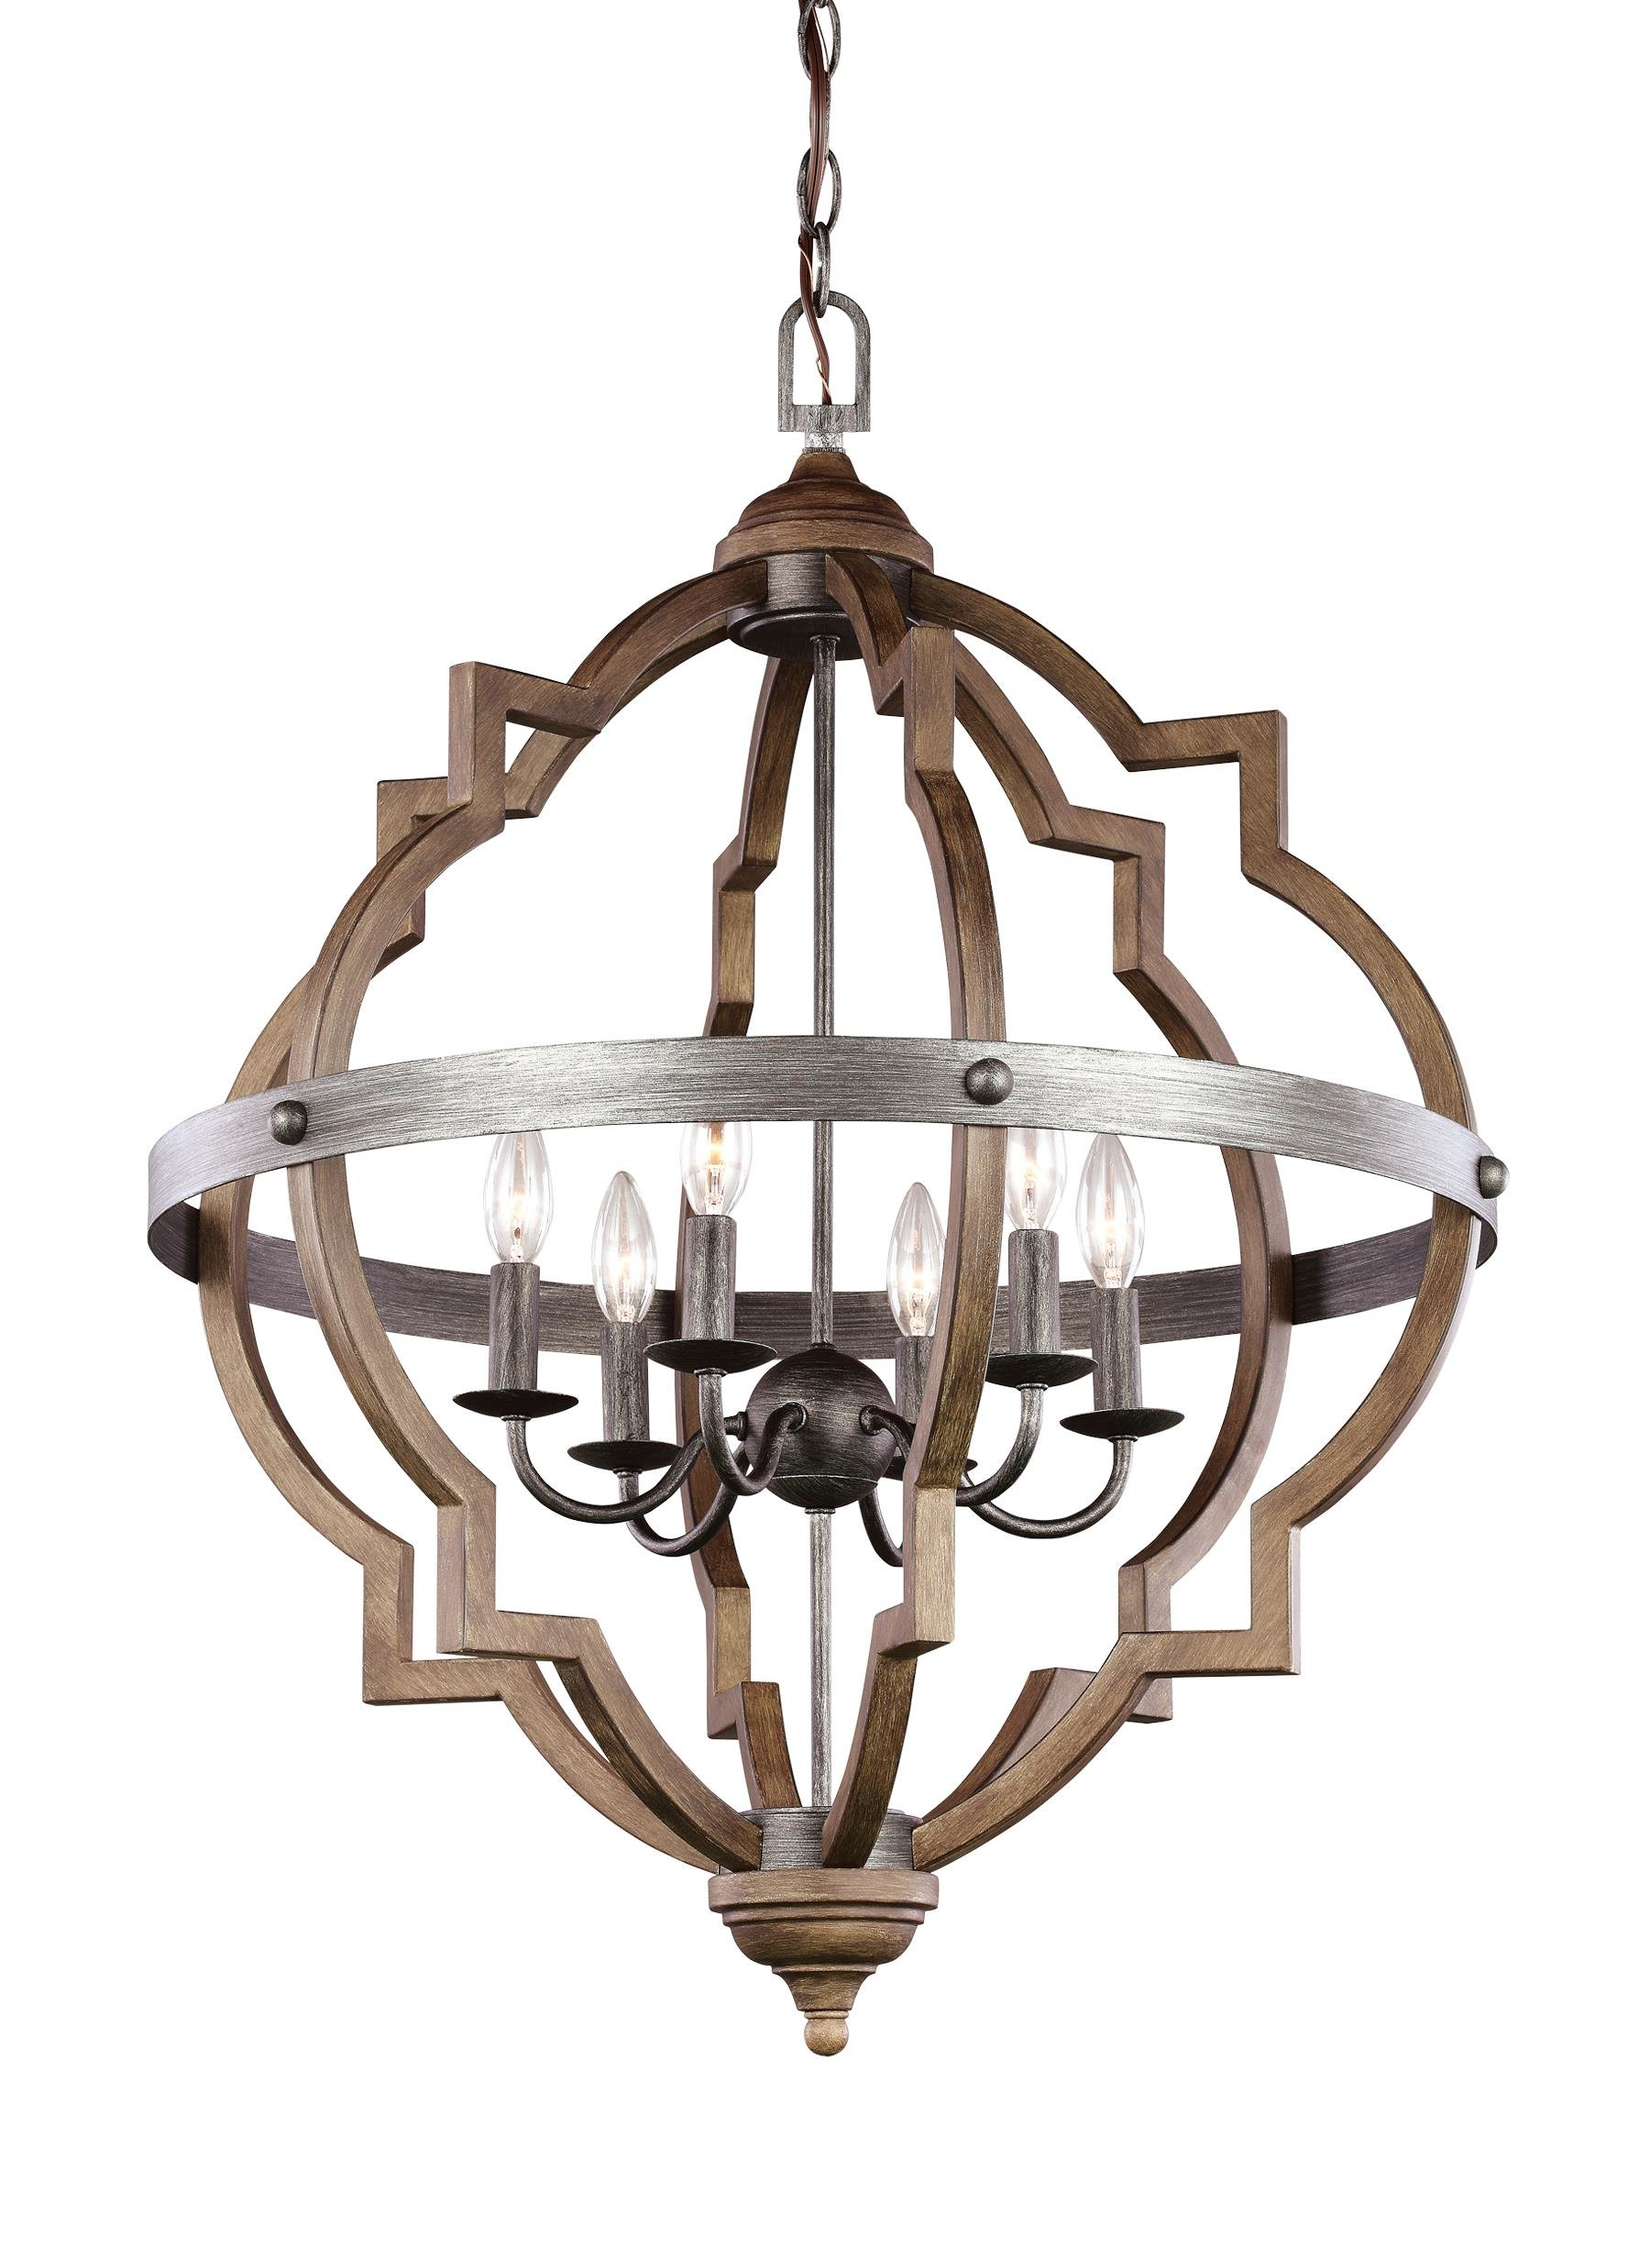 Bennington 6 Light Candle Style Chandelier Within Popular Bennington 4 Light Candle Style Chandeliers (View 6 of 20)